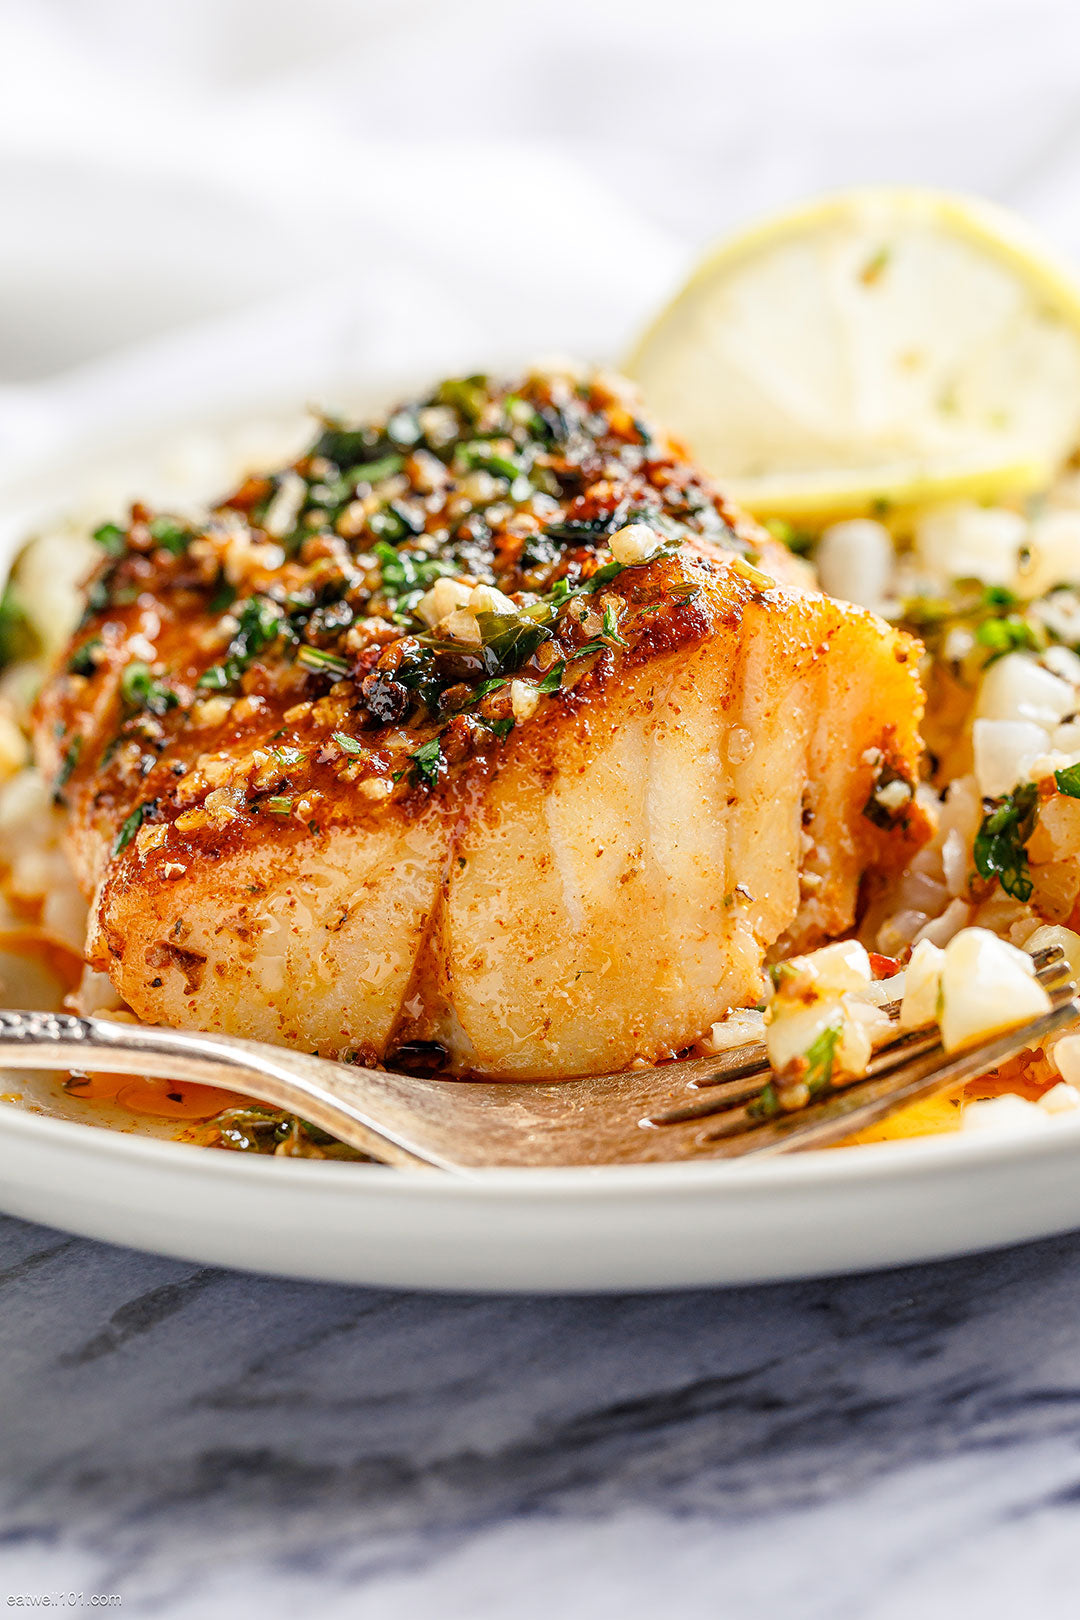 Mediterranean Baked Cod with Lemon and Garlic